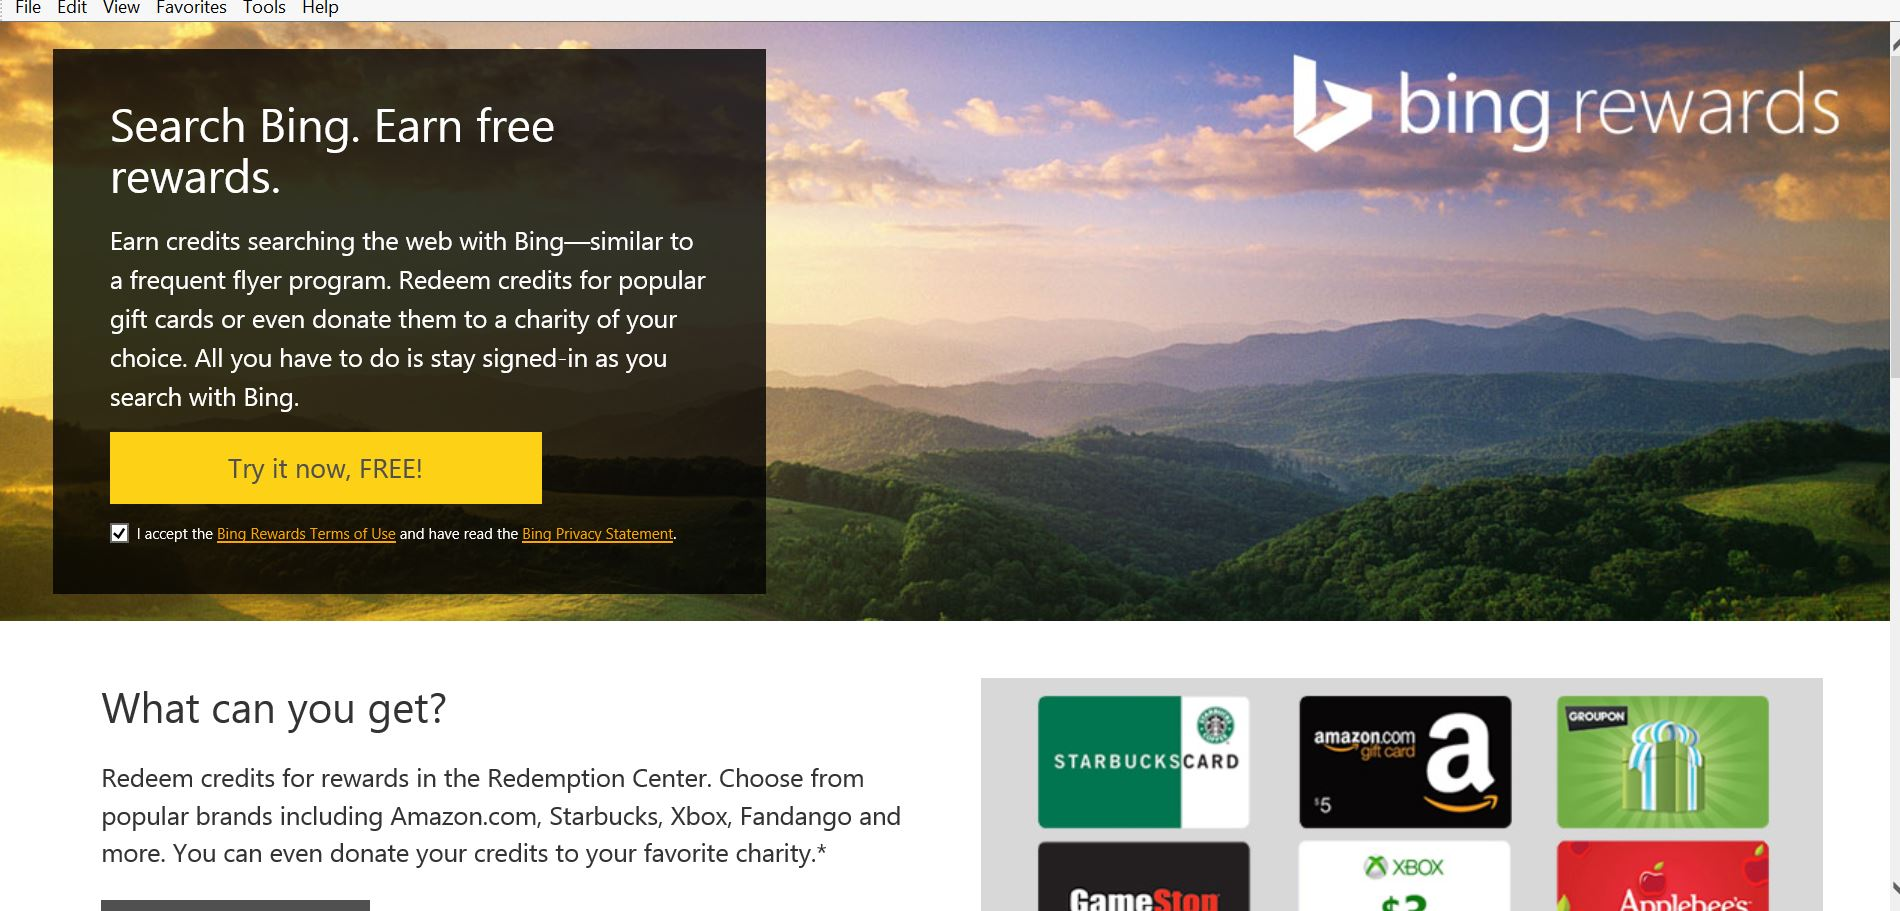 Bing rewards click here also as a click for details bing rewards